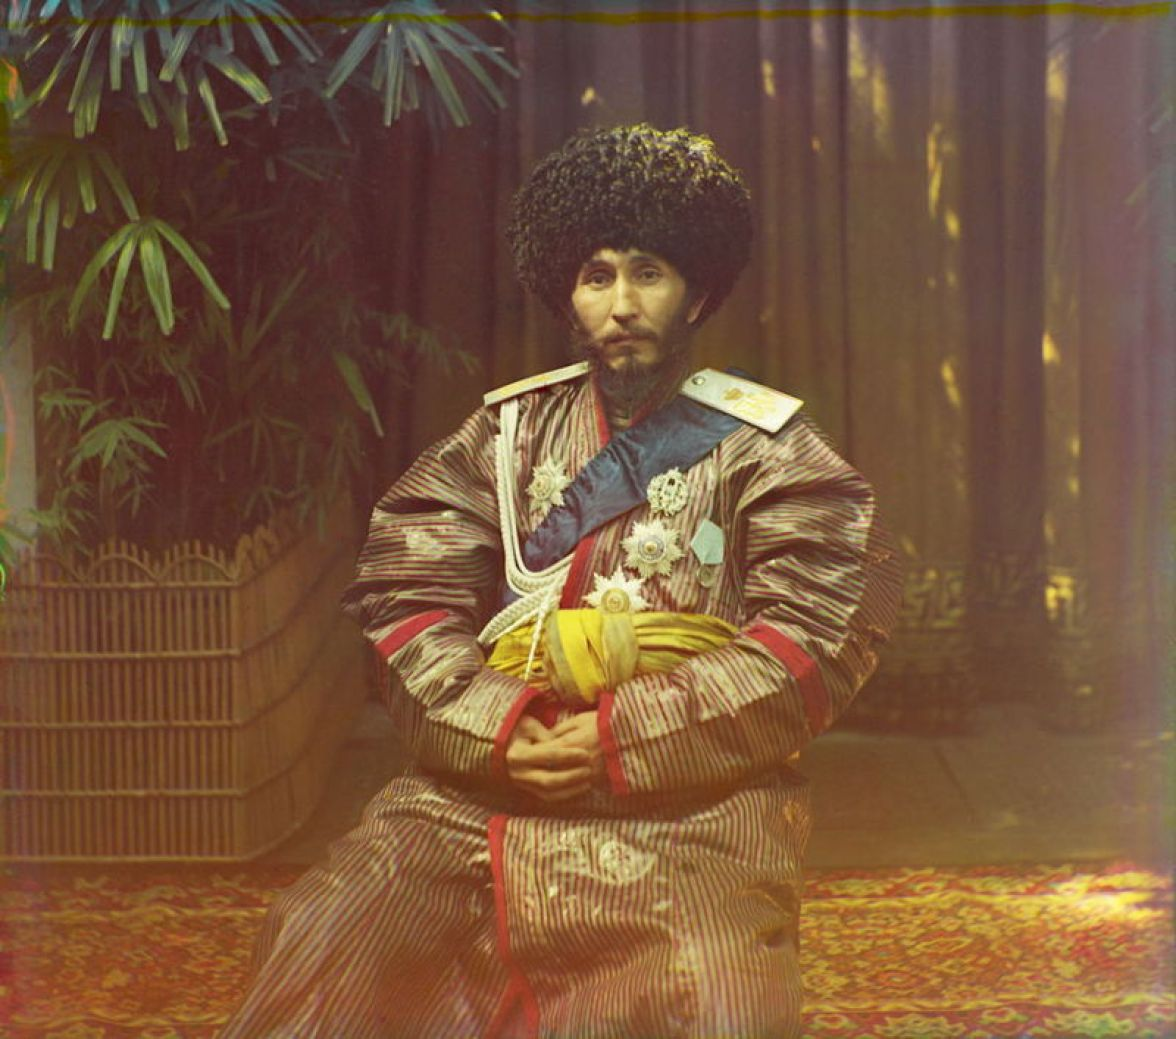 Prokudin-Gorskii, Sergei Mikhailovich. Khan of Khorezm (Khiva) Isfandiyar Jurji Bahadur, 1906-1911. 1 negative (3 frames) : glass, b&w, three-color separation. Library of Congress, Prokudin-Gorskii Collection.